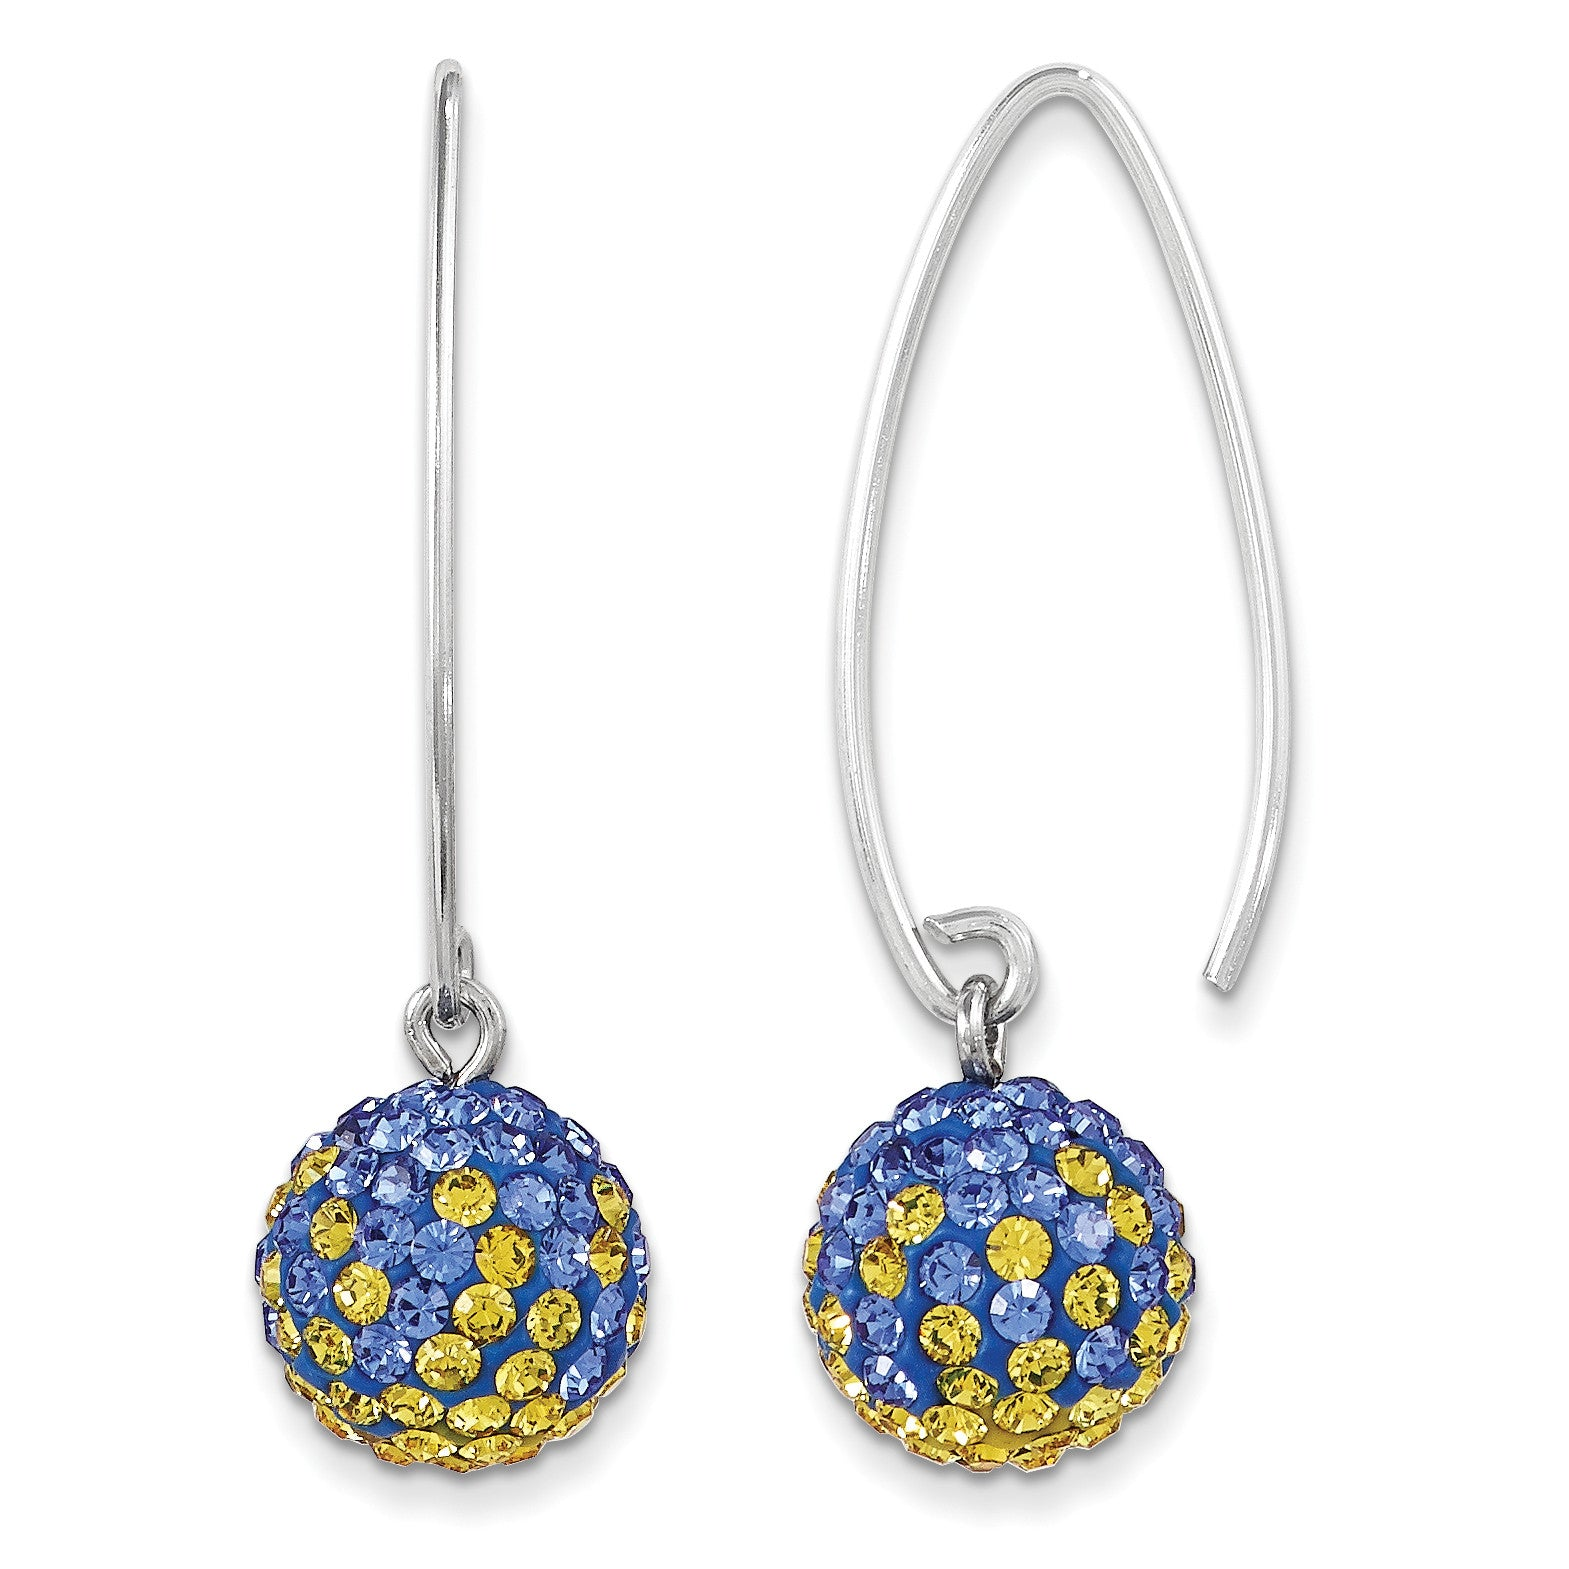 Sterling Silver Swarovski Elements Los Angeles Spirit Ball Earrings CE0174 - shirin-diamonds